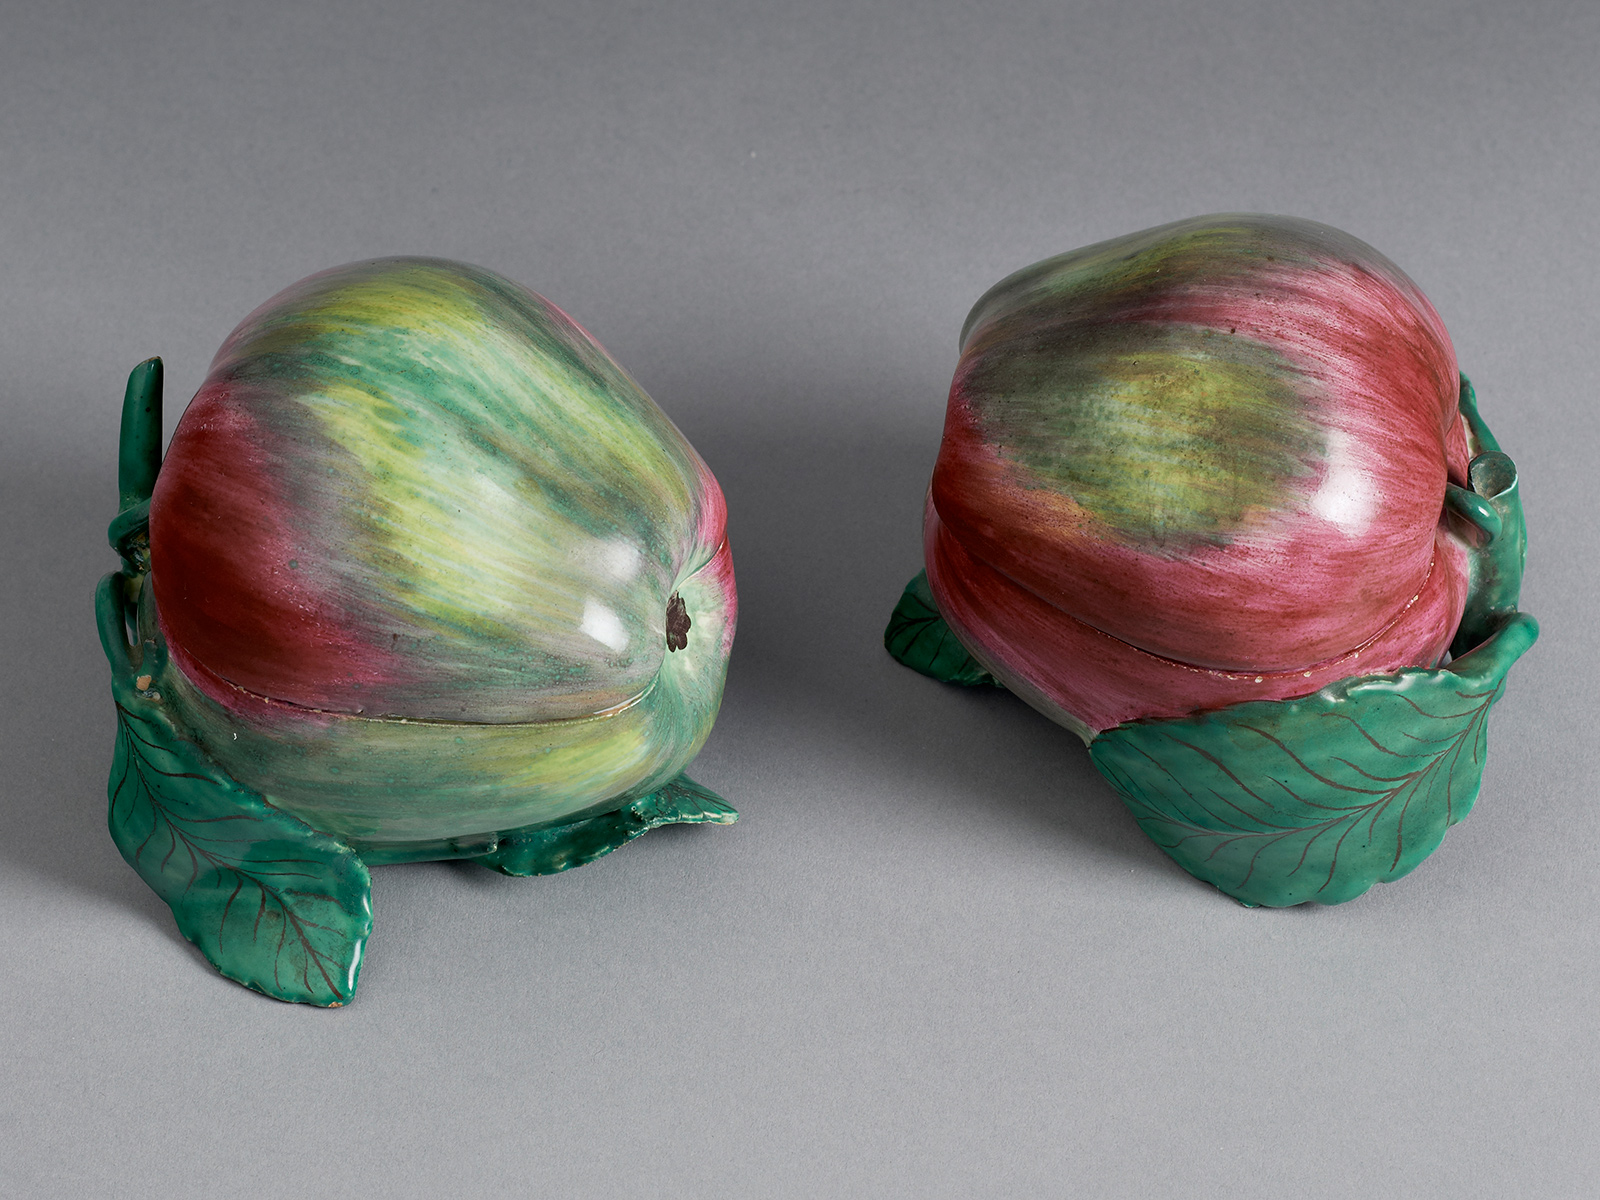 An Extremely Rare Pair of Strasbourg Faience Apple Boxes and Covers